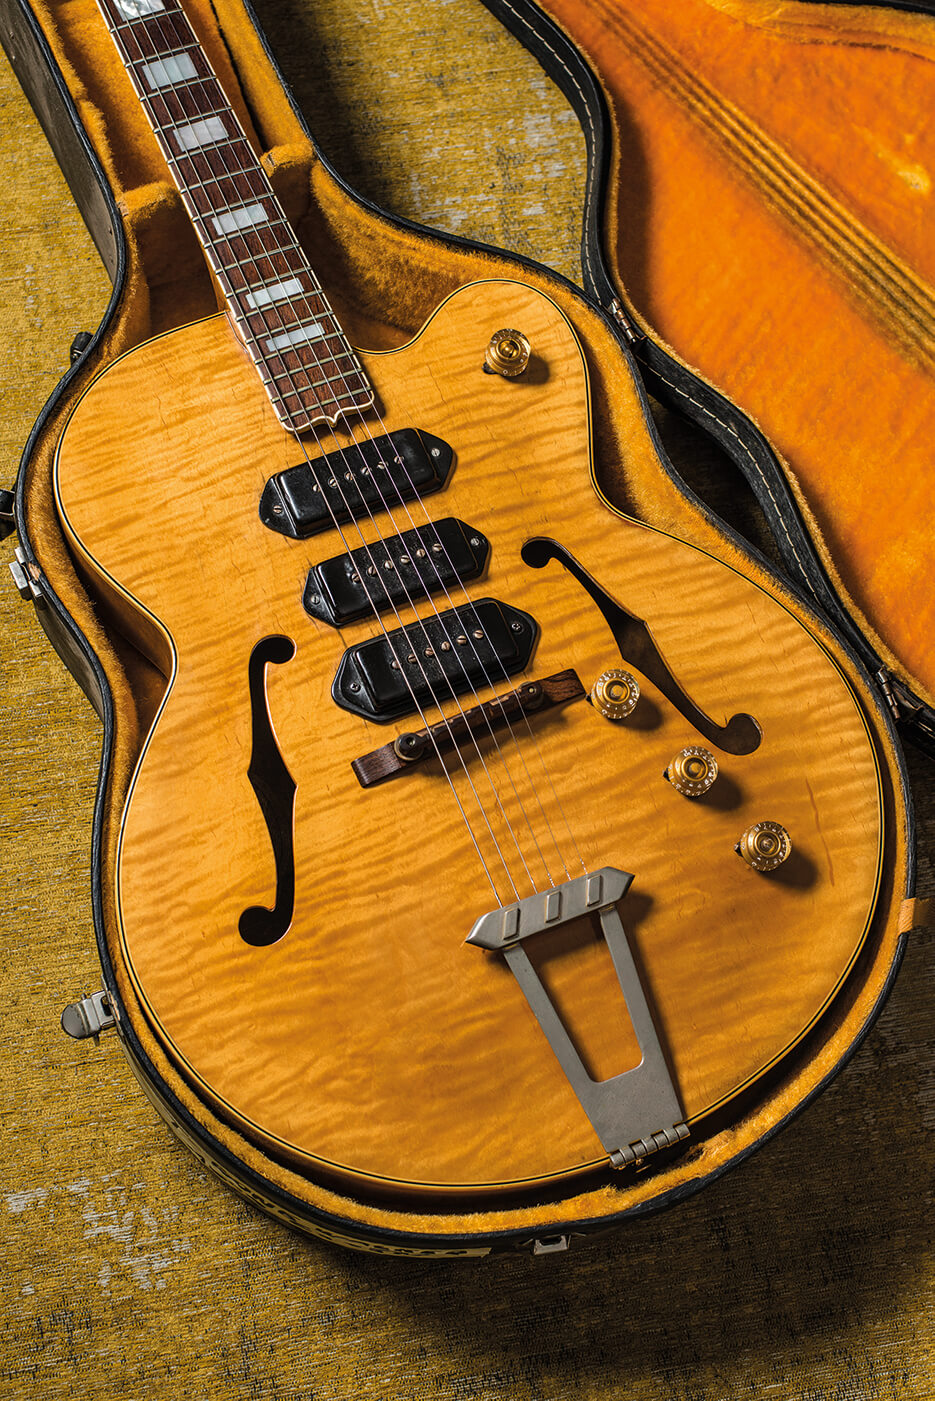 T-Bone Walker Gibson 1949 ES-5 in case